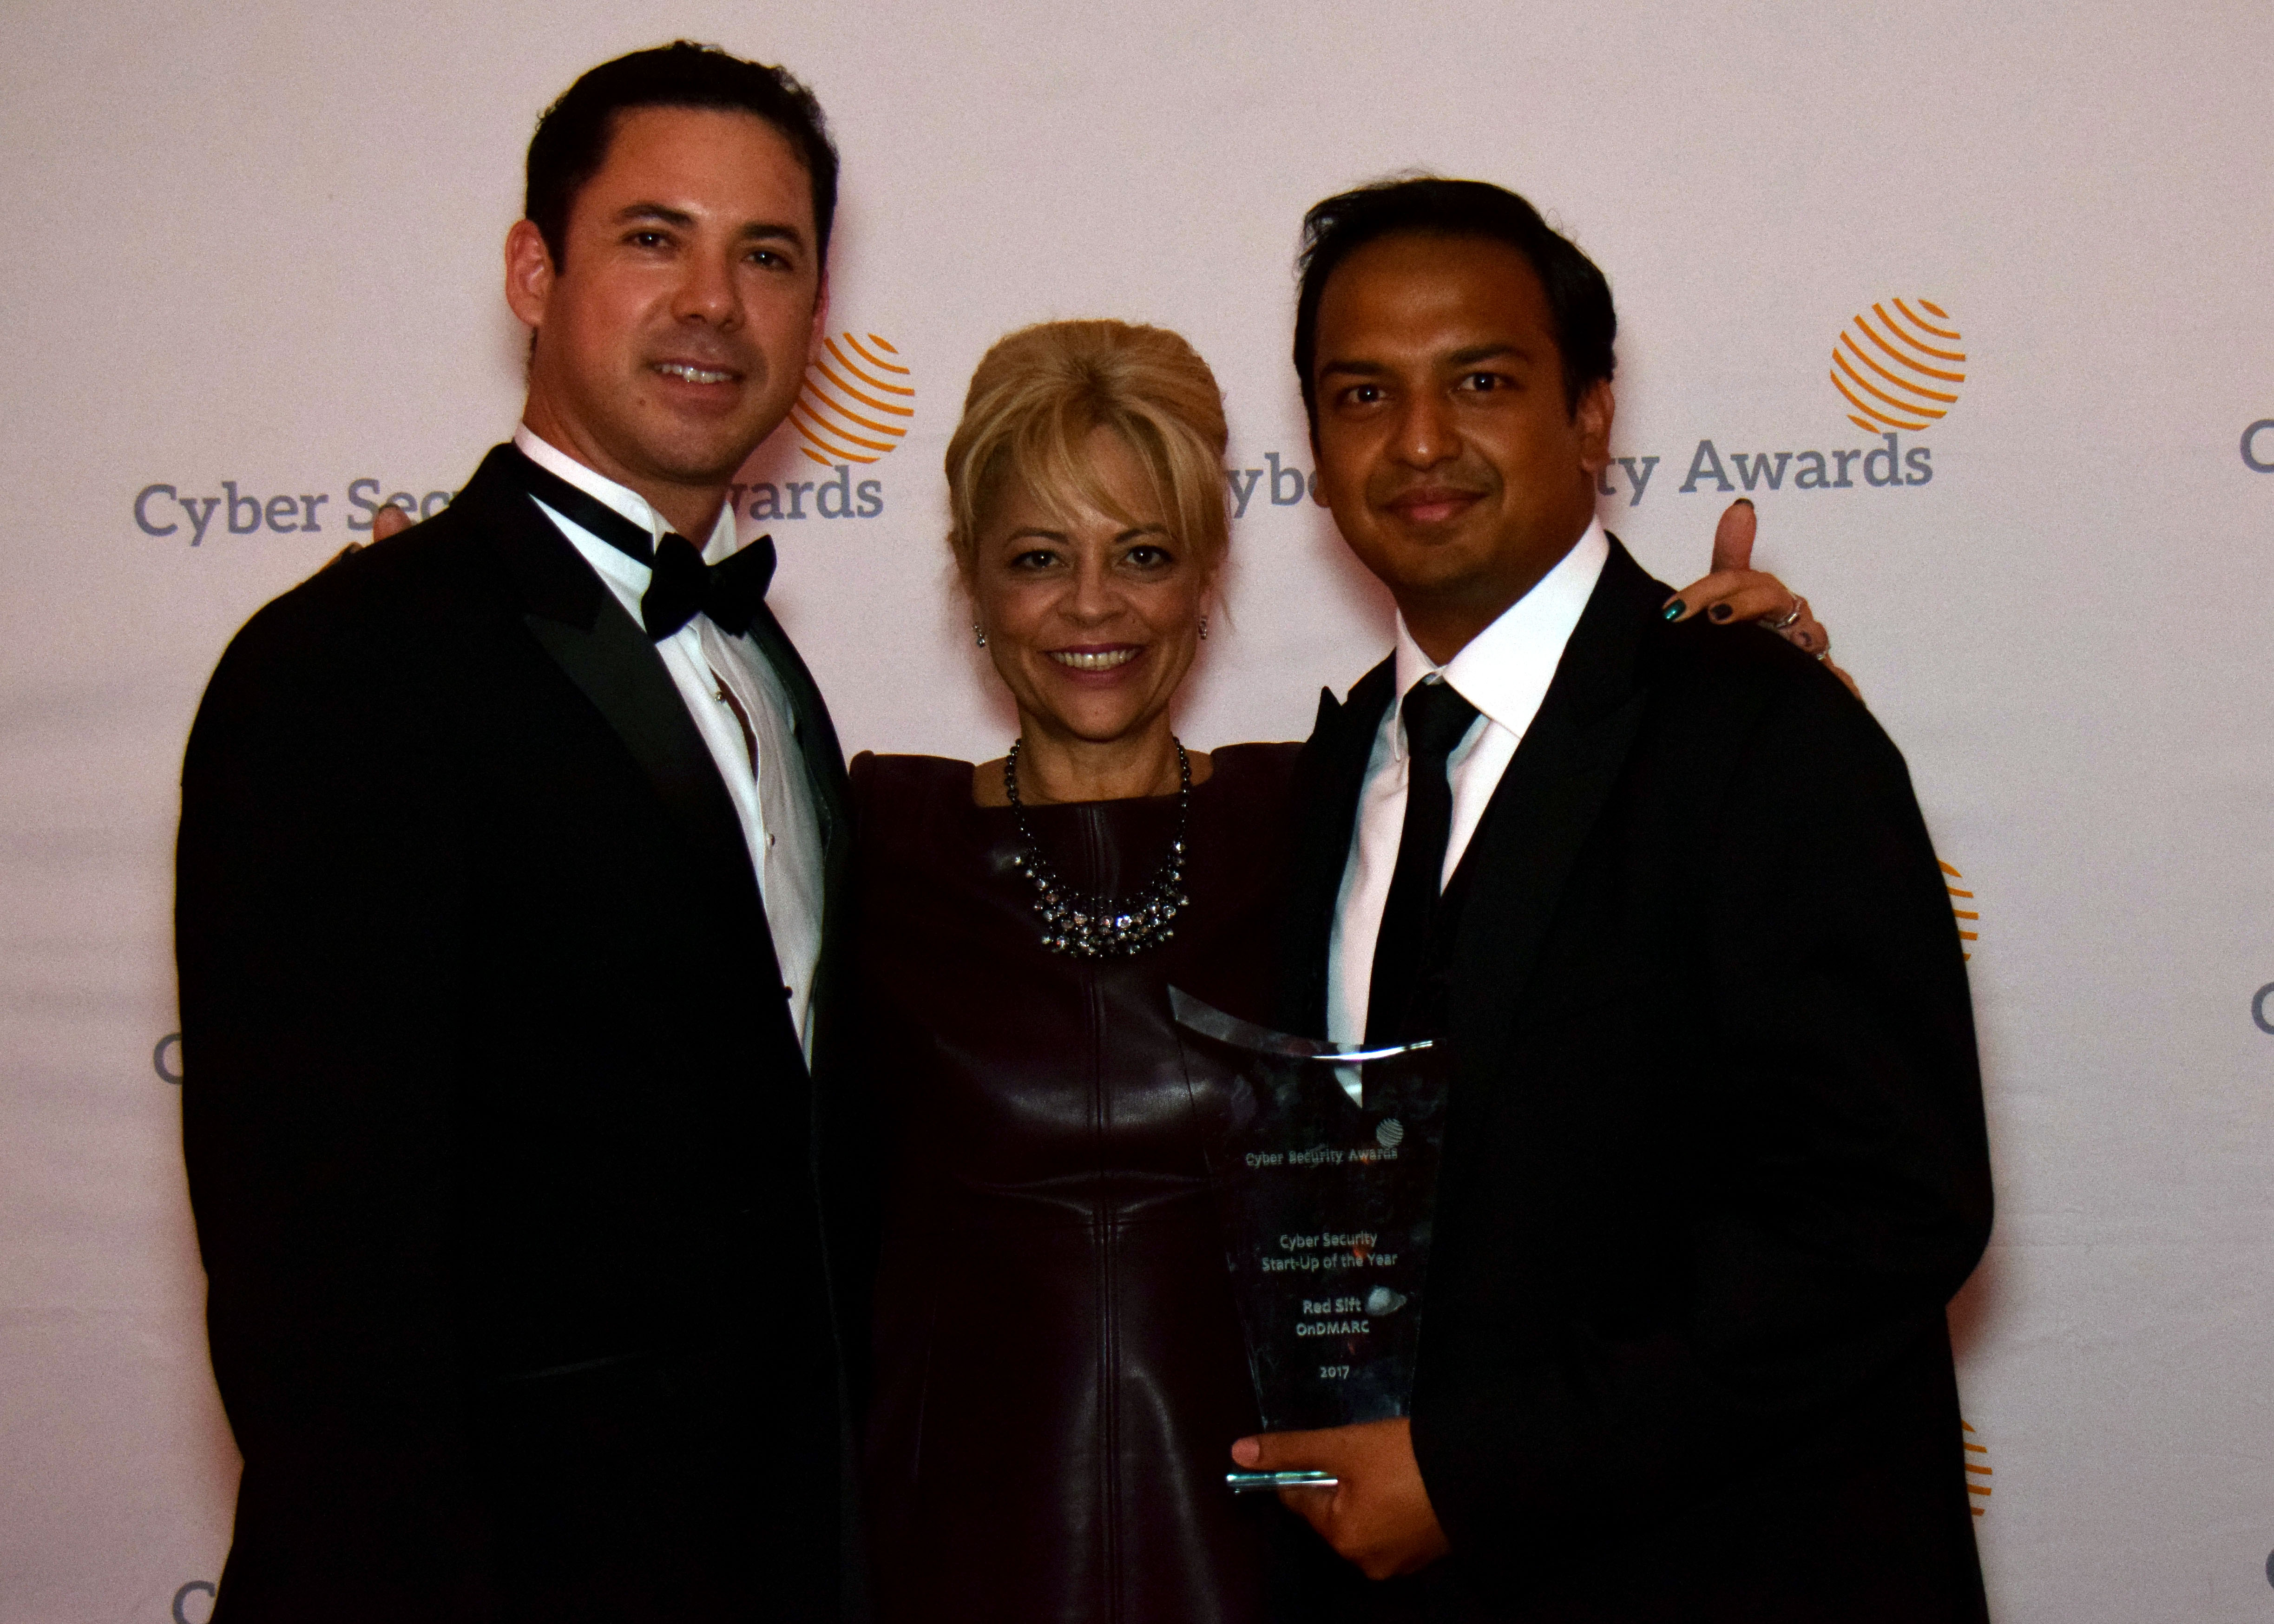 2017 Cyber Security Awards Cyber Security Start-Up of the Year Red Sift